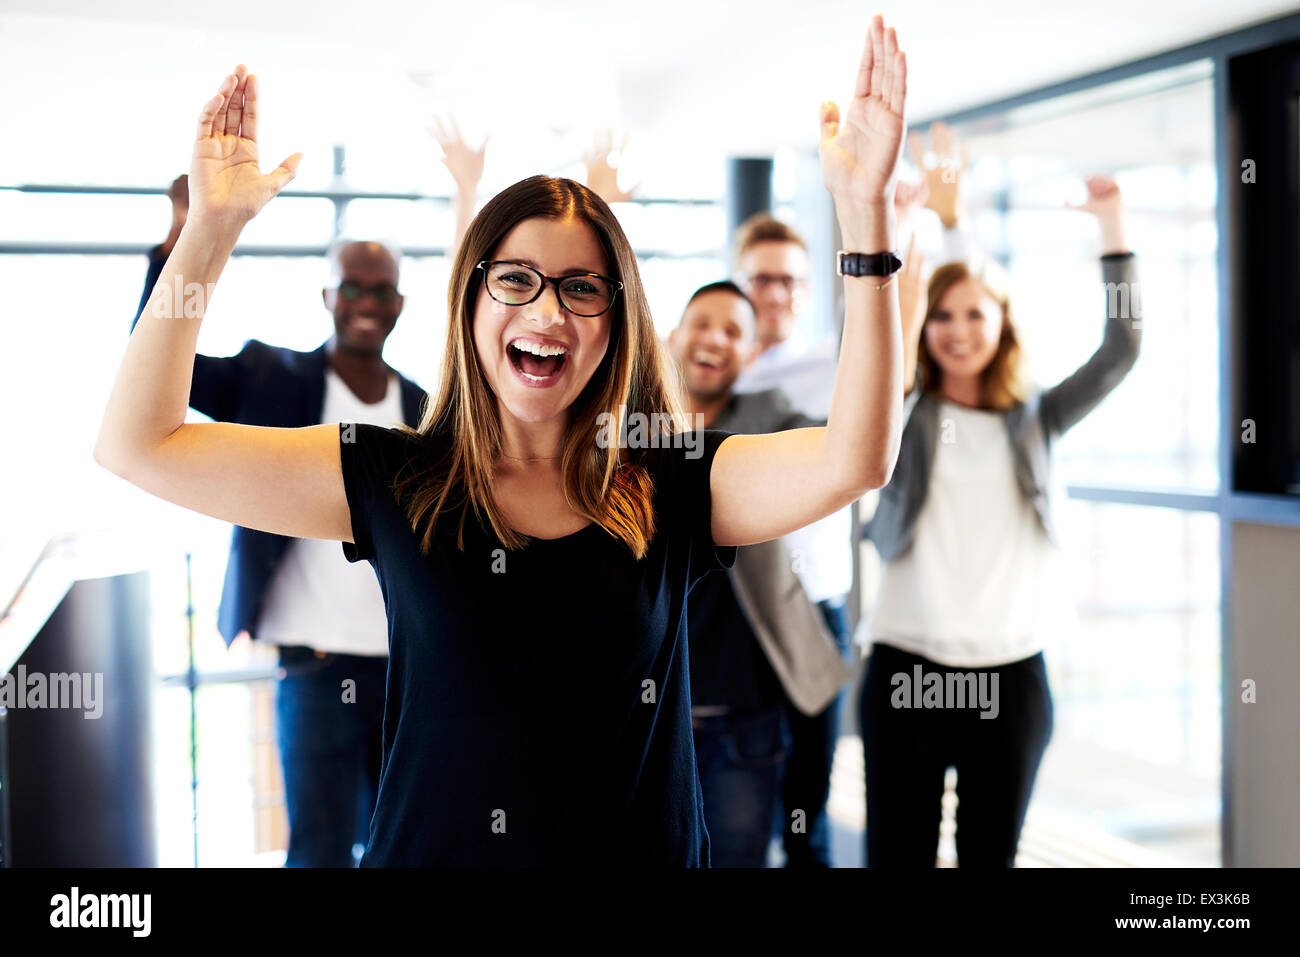 Young white female executive standing in front of colleagues with their arms raised up. - Stock Image